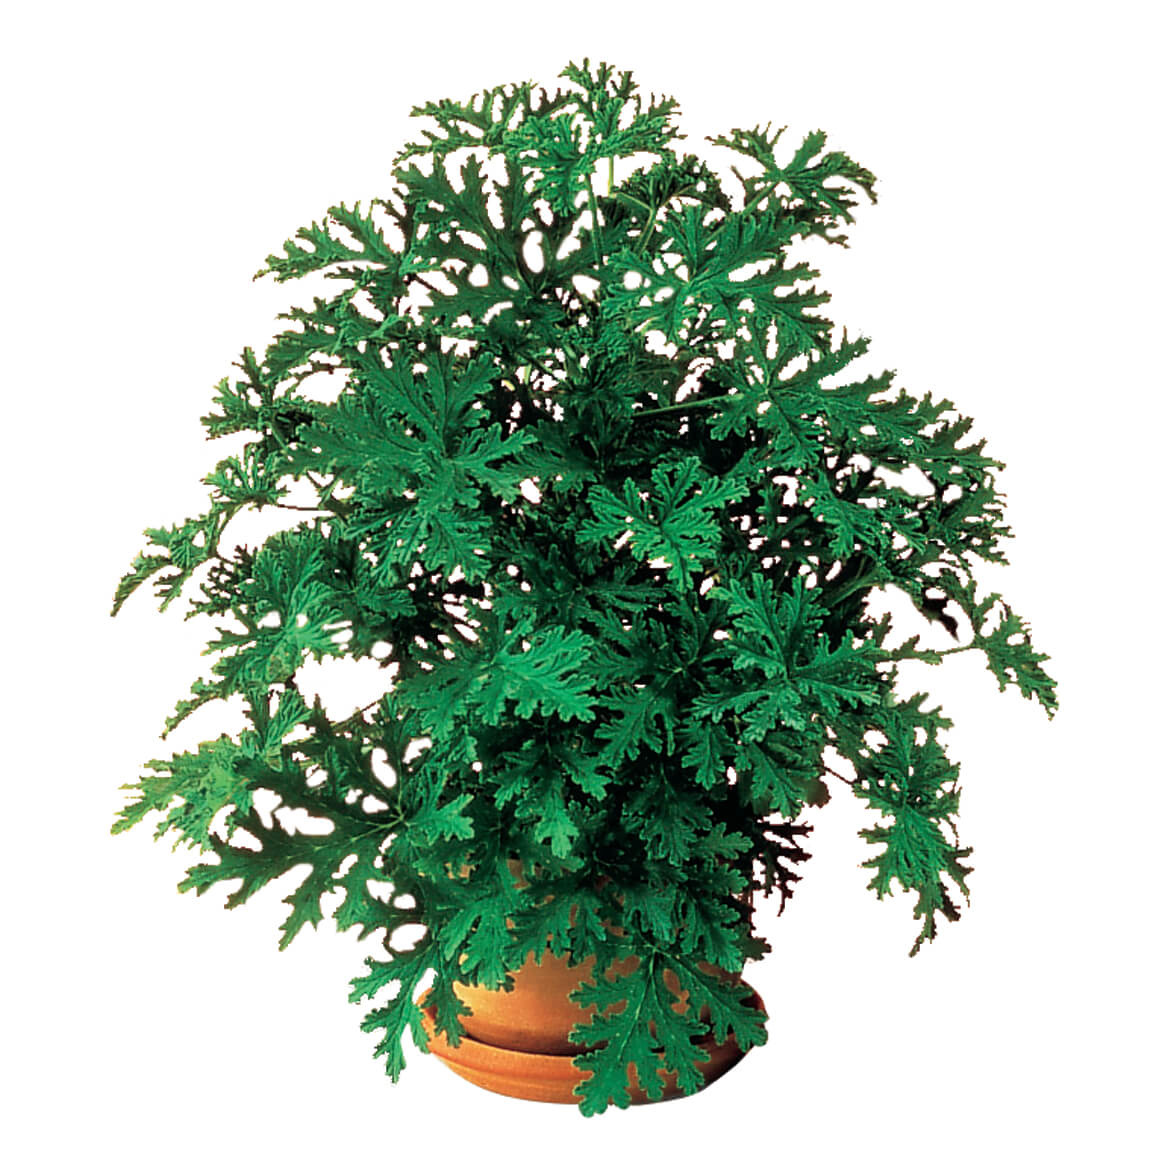 Anti Mosquito Plant Set Mosquito Repelling Plant Miles Kimball